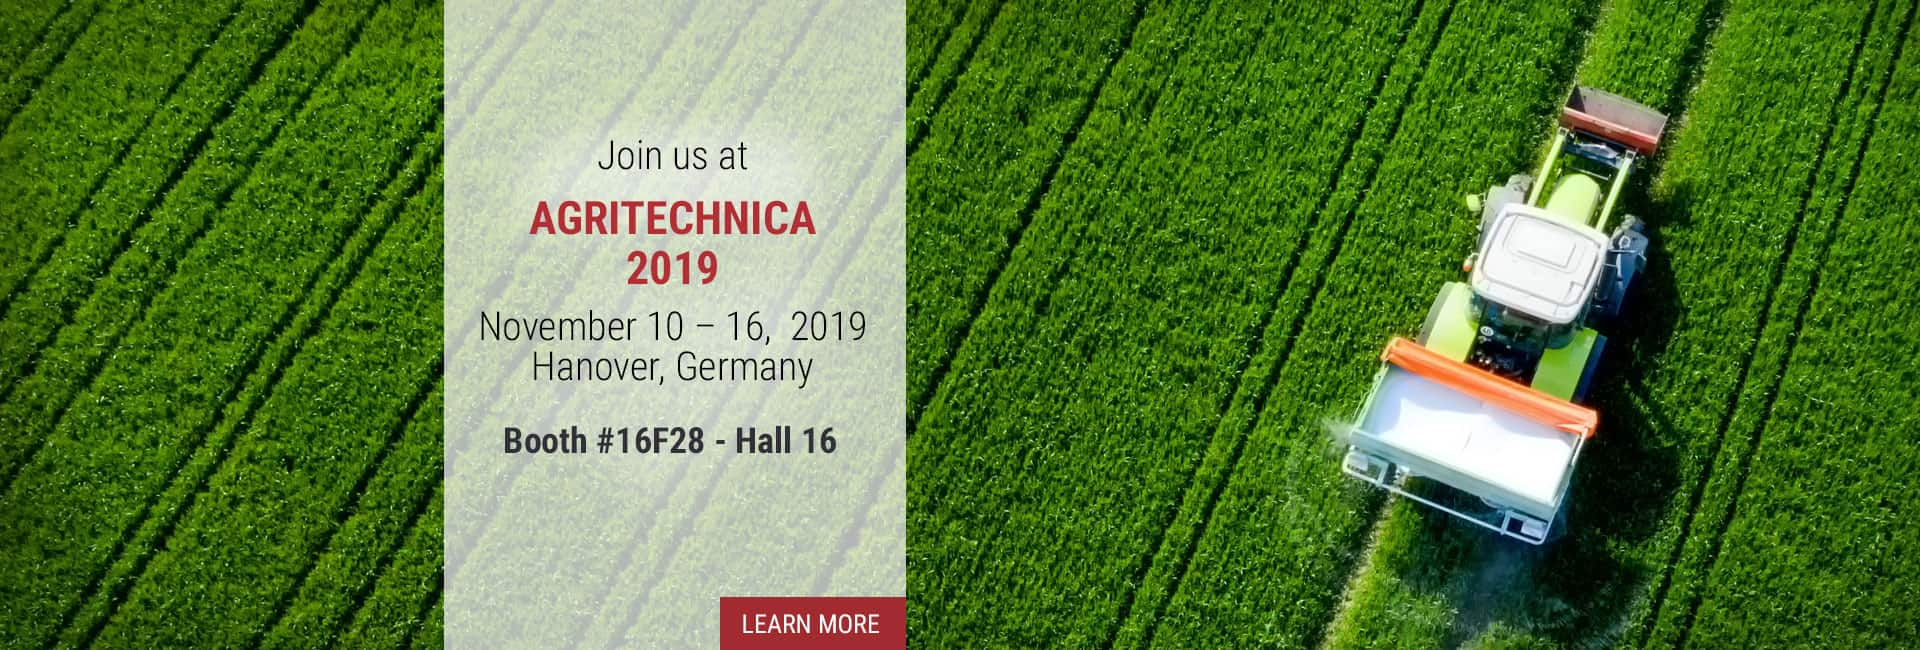 Join us at Agritechnica 2019